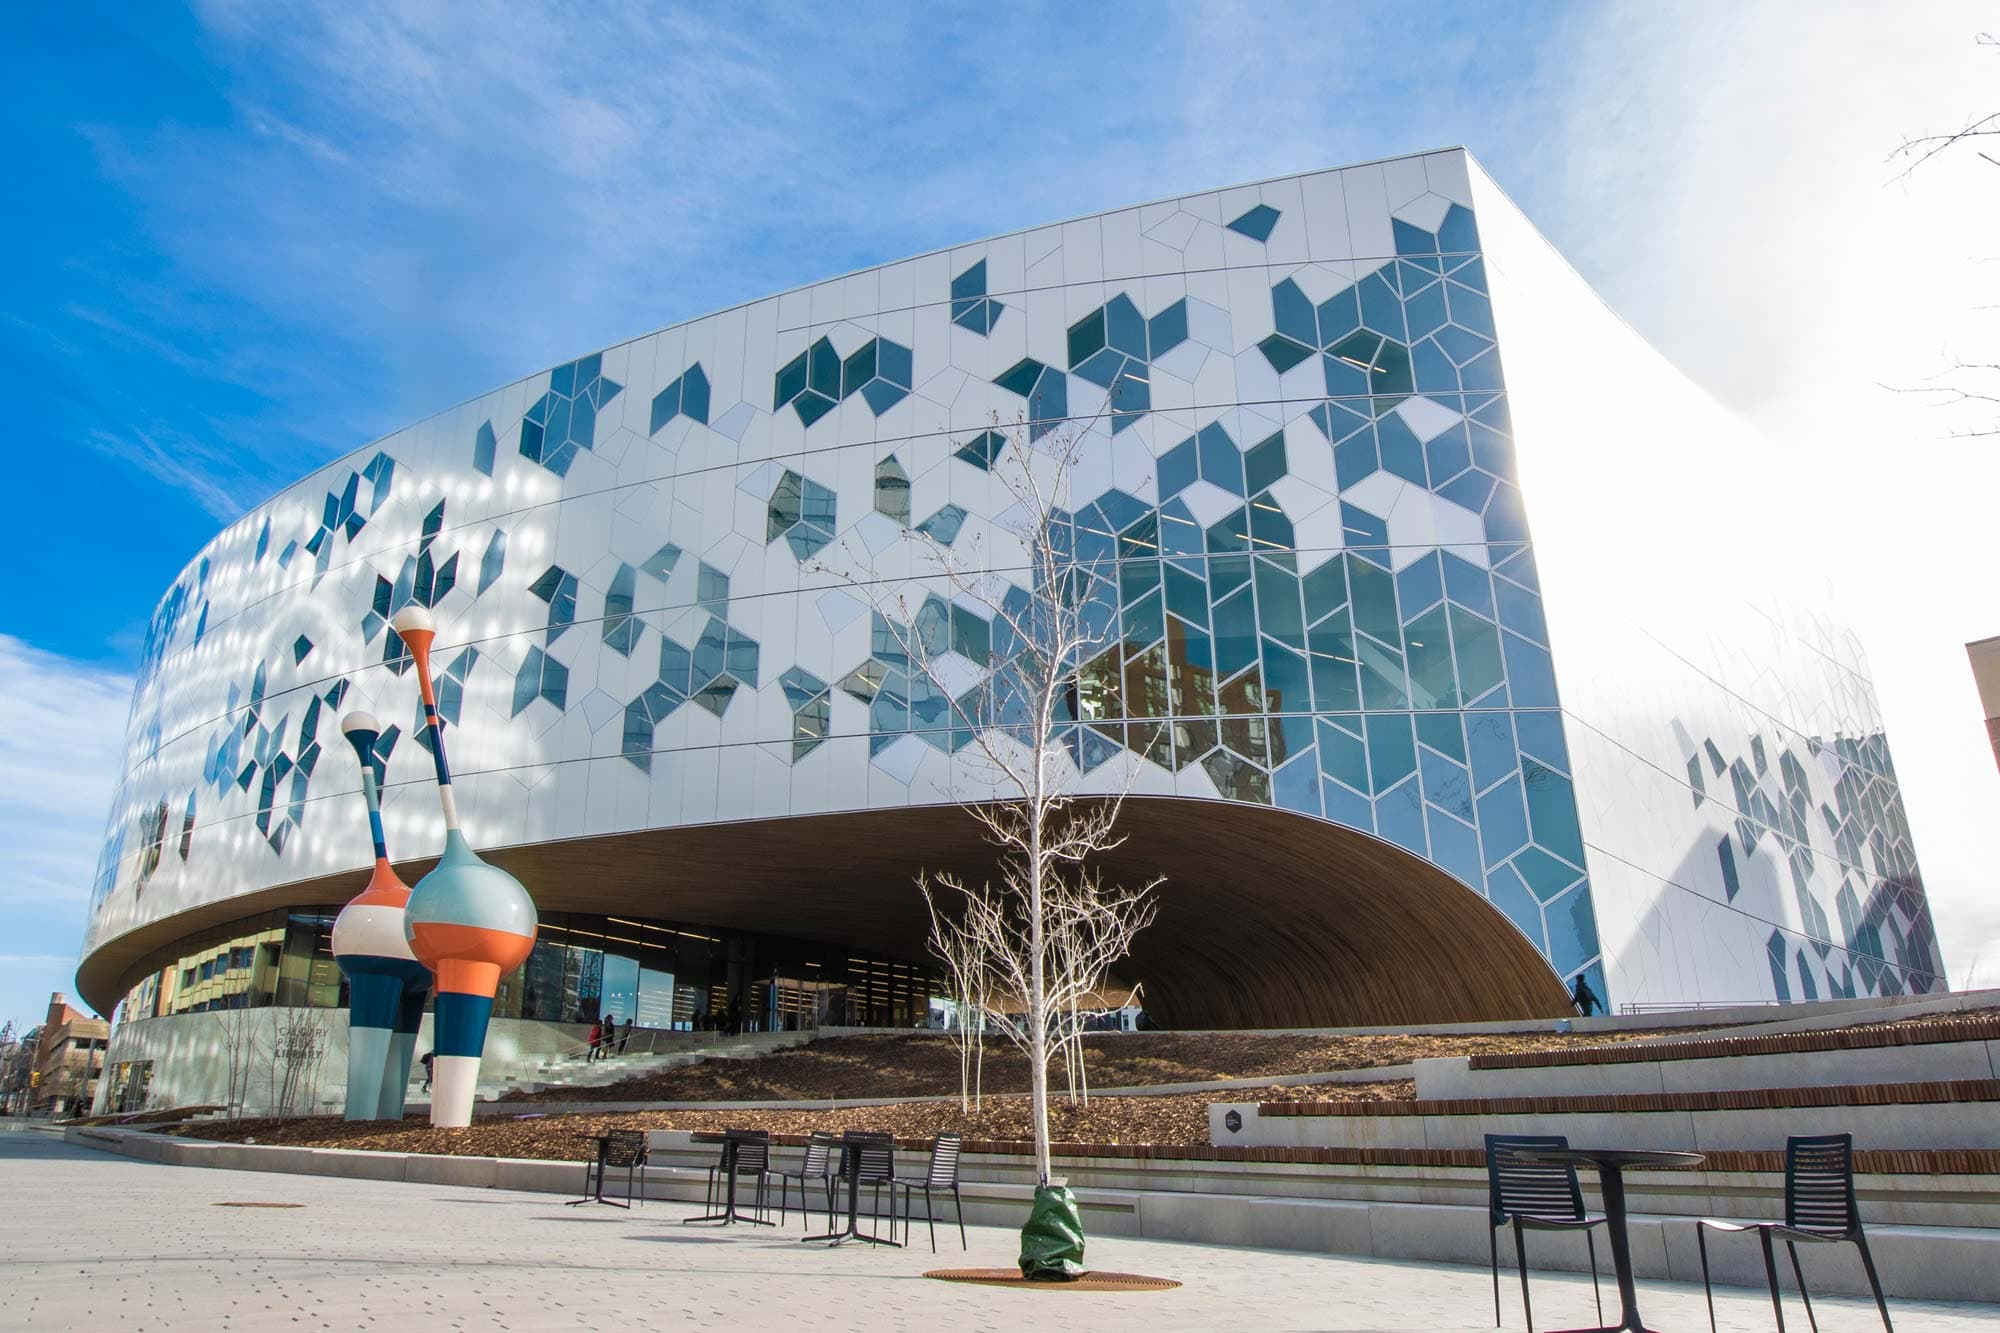 Calgary's new central public library